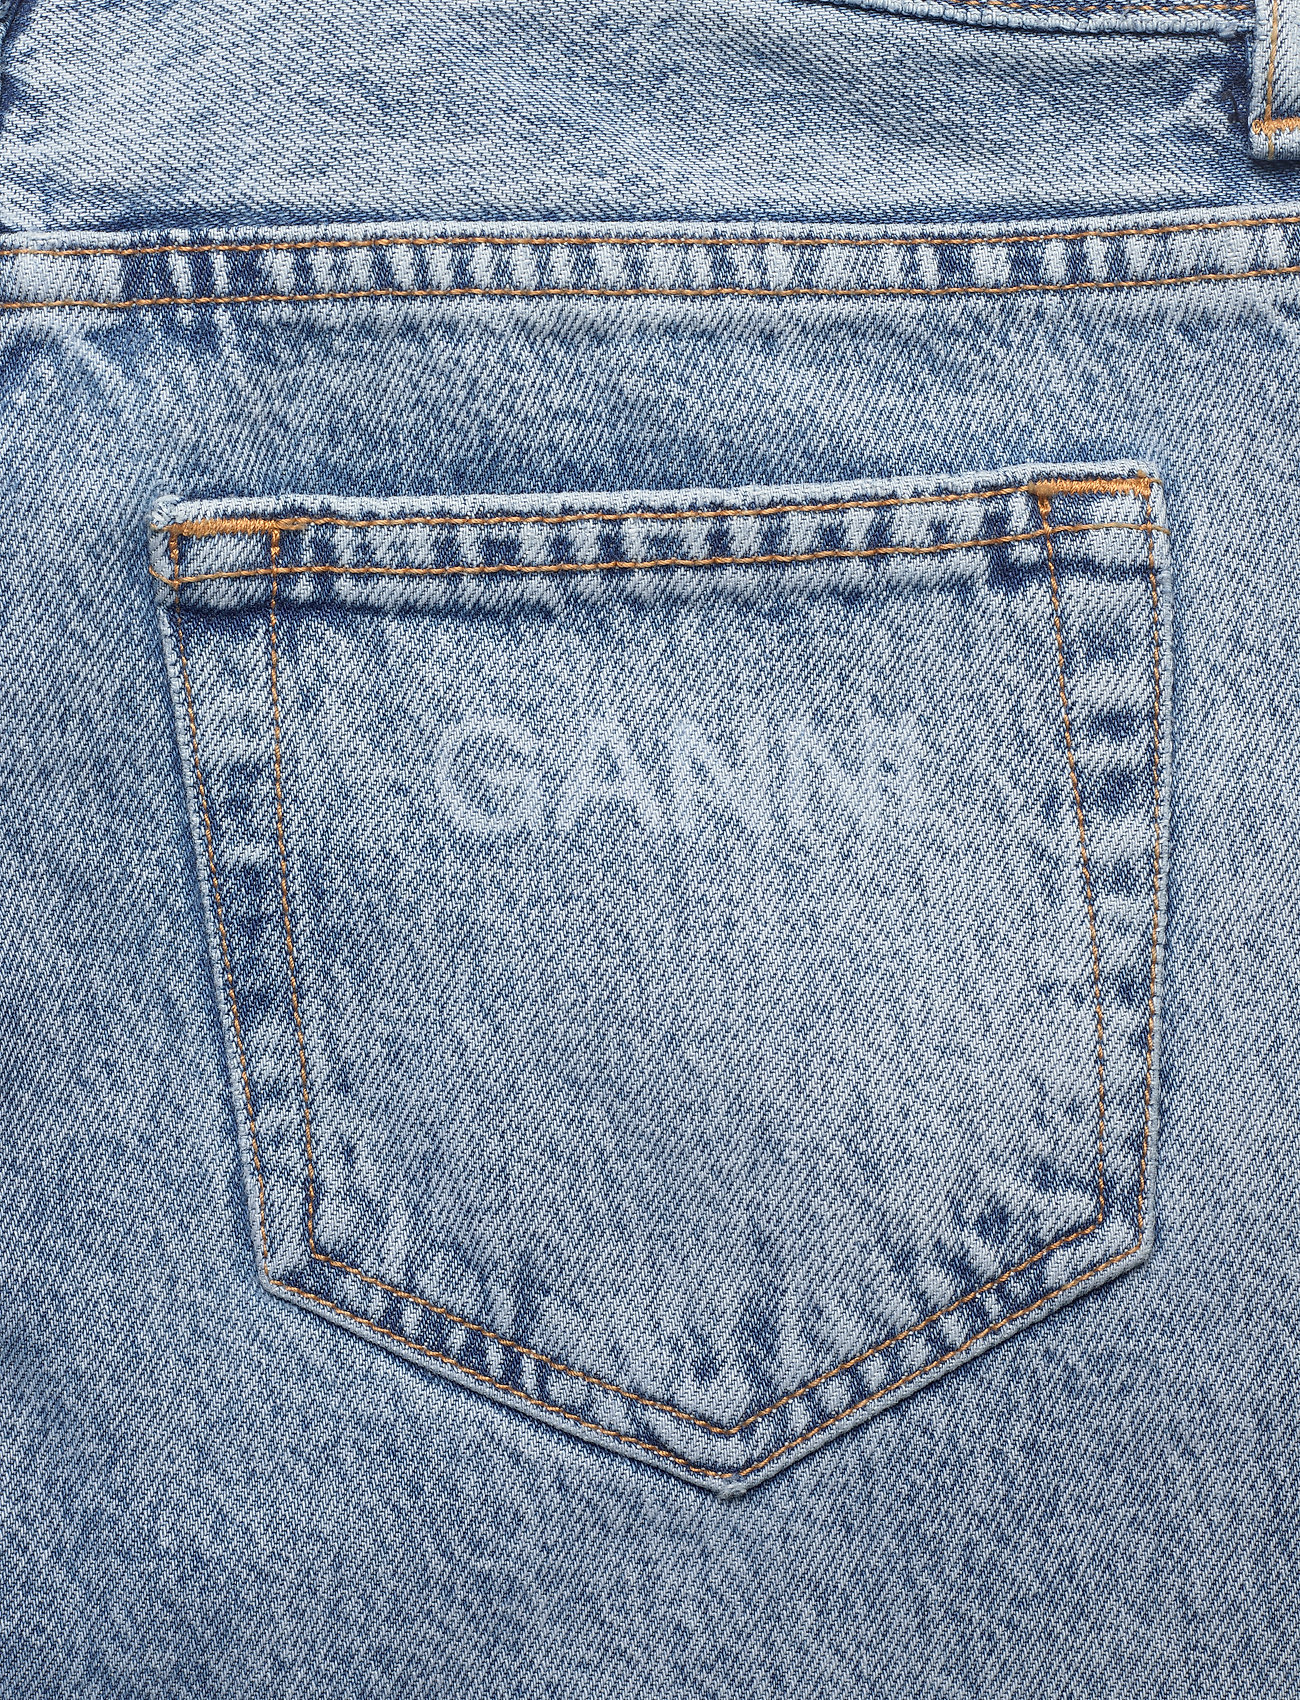 Ganni - Classic Denim - slim jeans - washed indigo - 4